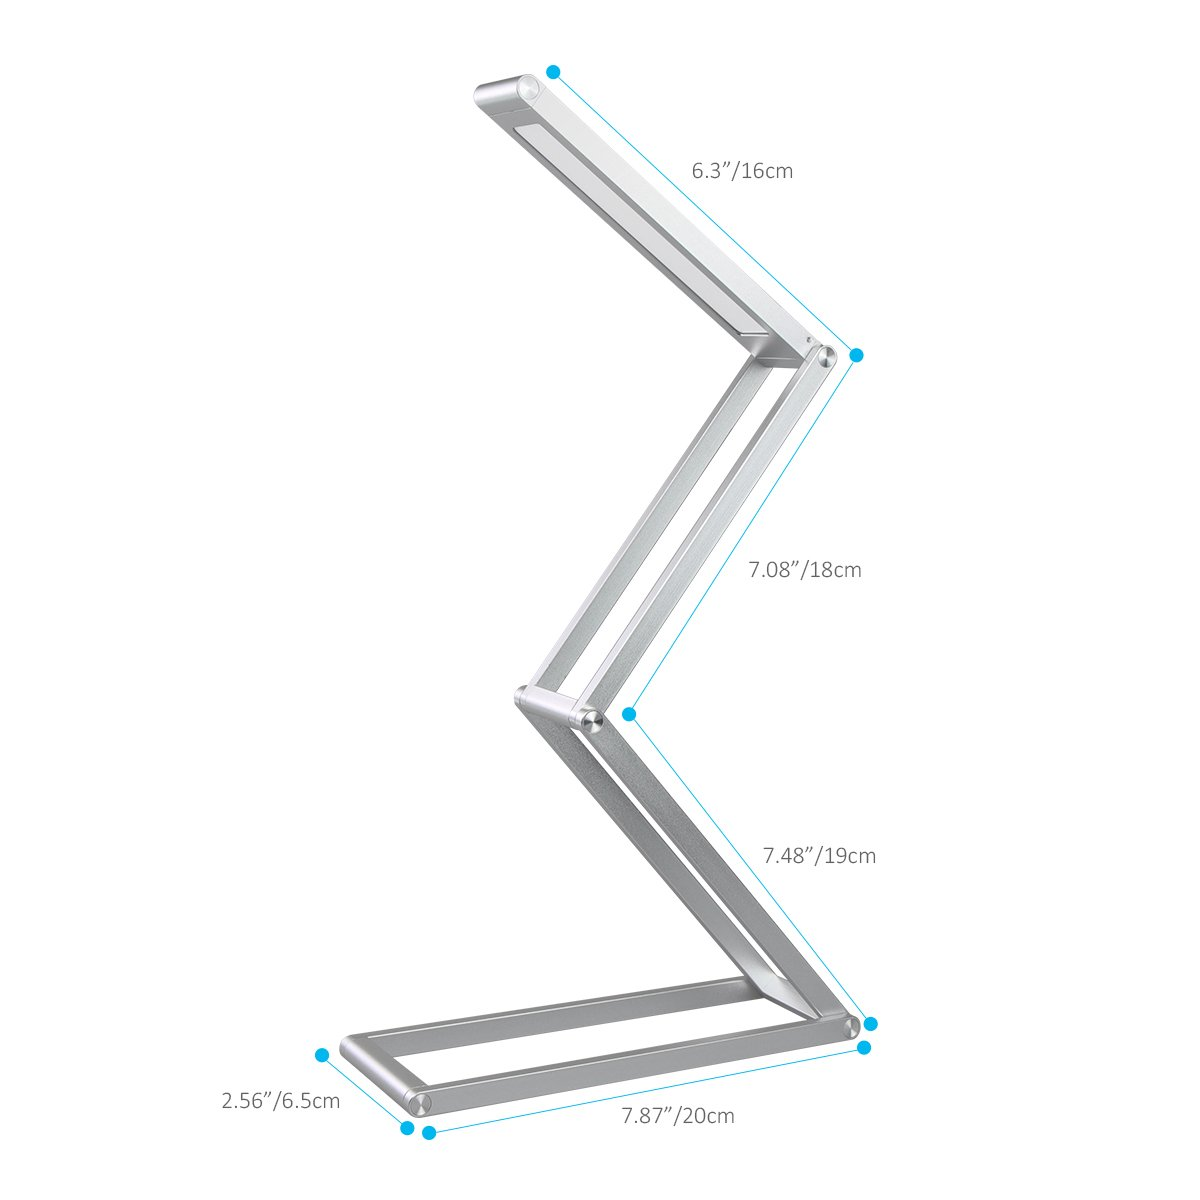 Elzo Rechargeable LED Desk Lamp, Portable Dimmable Table Lamp, USB Charging Port, 2 Brightness Levels, Aluminum Alloy Folding Lamp with Wall Mount for Reading Studying Working Camping (Silver) by ELZO (Image #5)